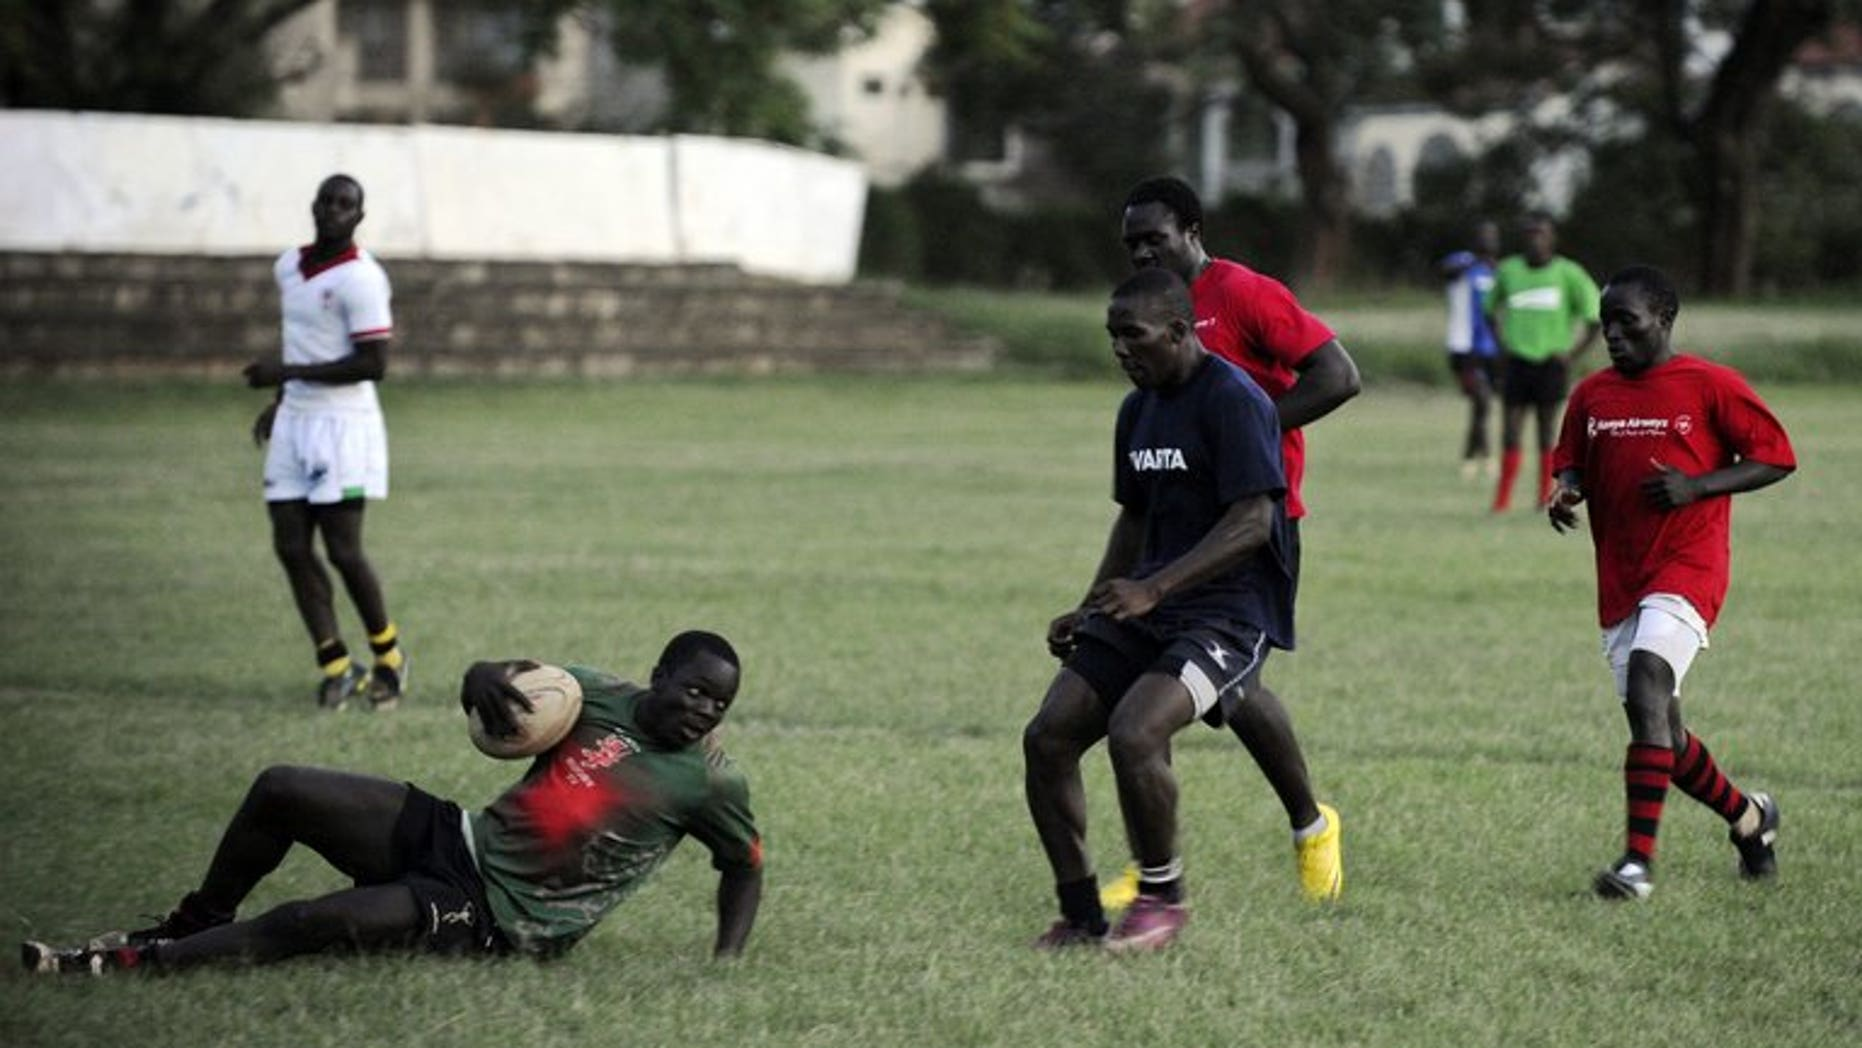 Rugby sevens Kenyan national team players take part in a training session on November 2, 2012 in Nairobi. Mike Friday resigned as Kenya Sevens head coach on Wednesday, citing too much interference in his work and disatisfaction over the lack of funding for the national team.